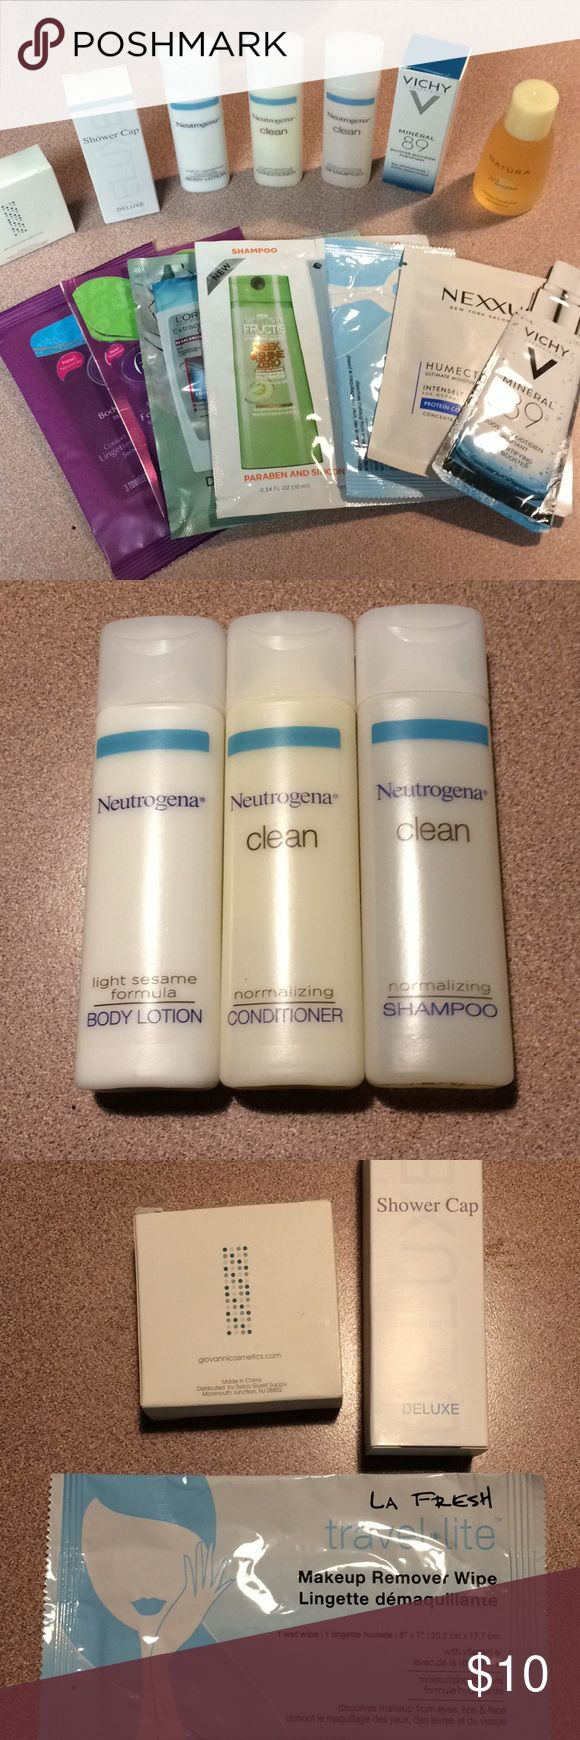 Bundle of beauty/health samples/trial size Neutrogena